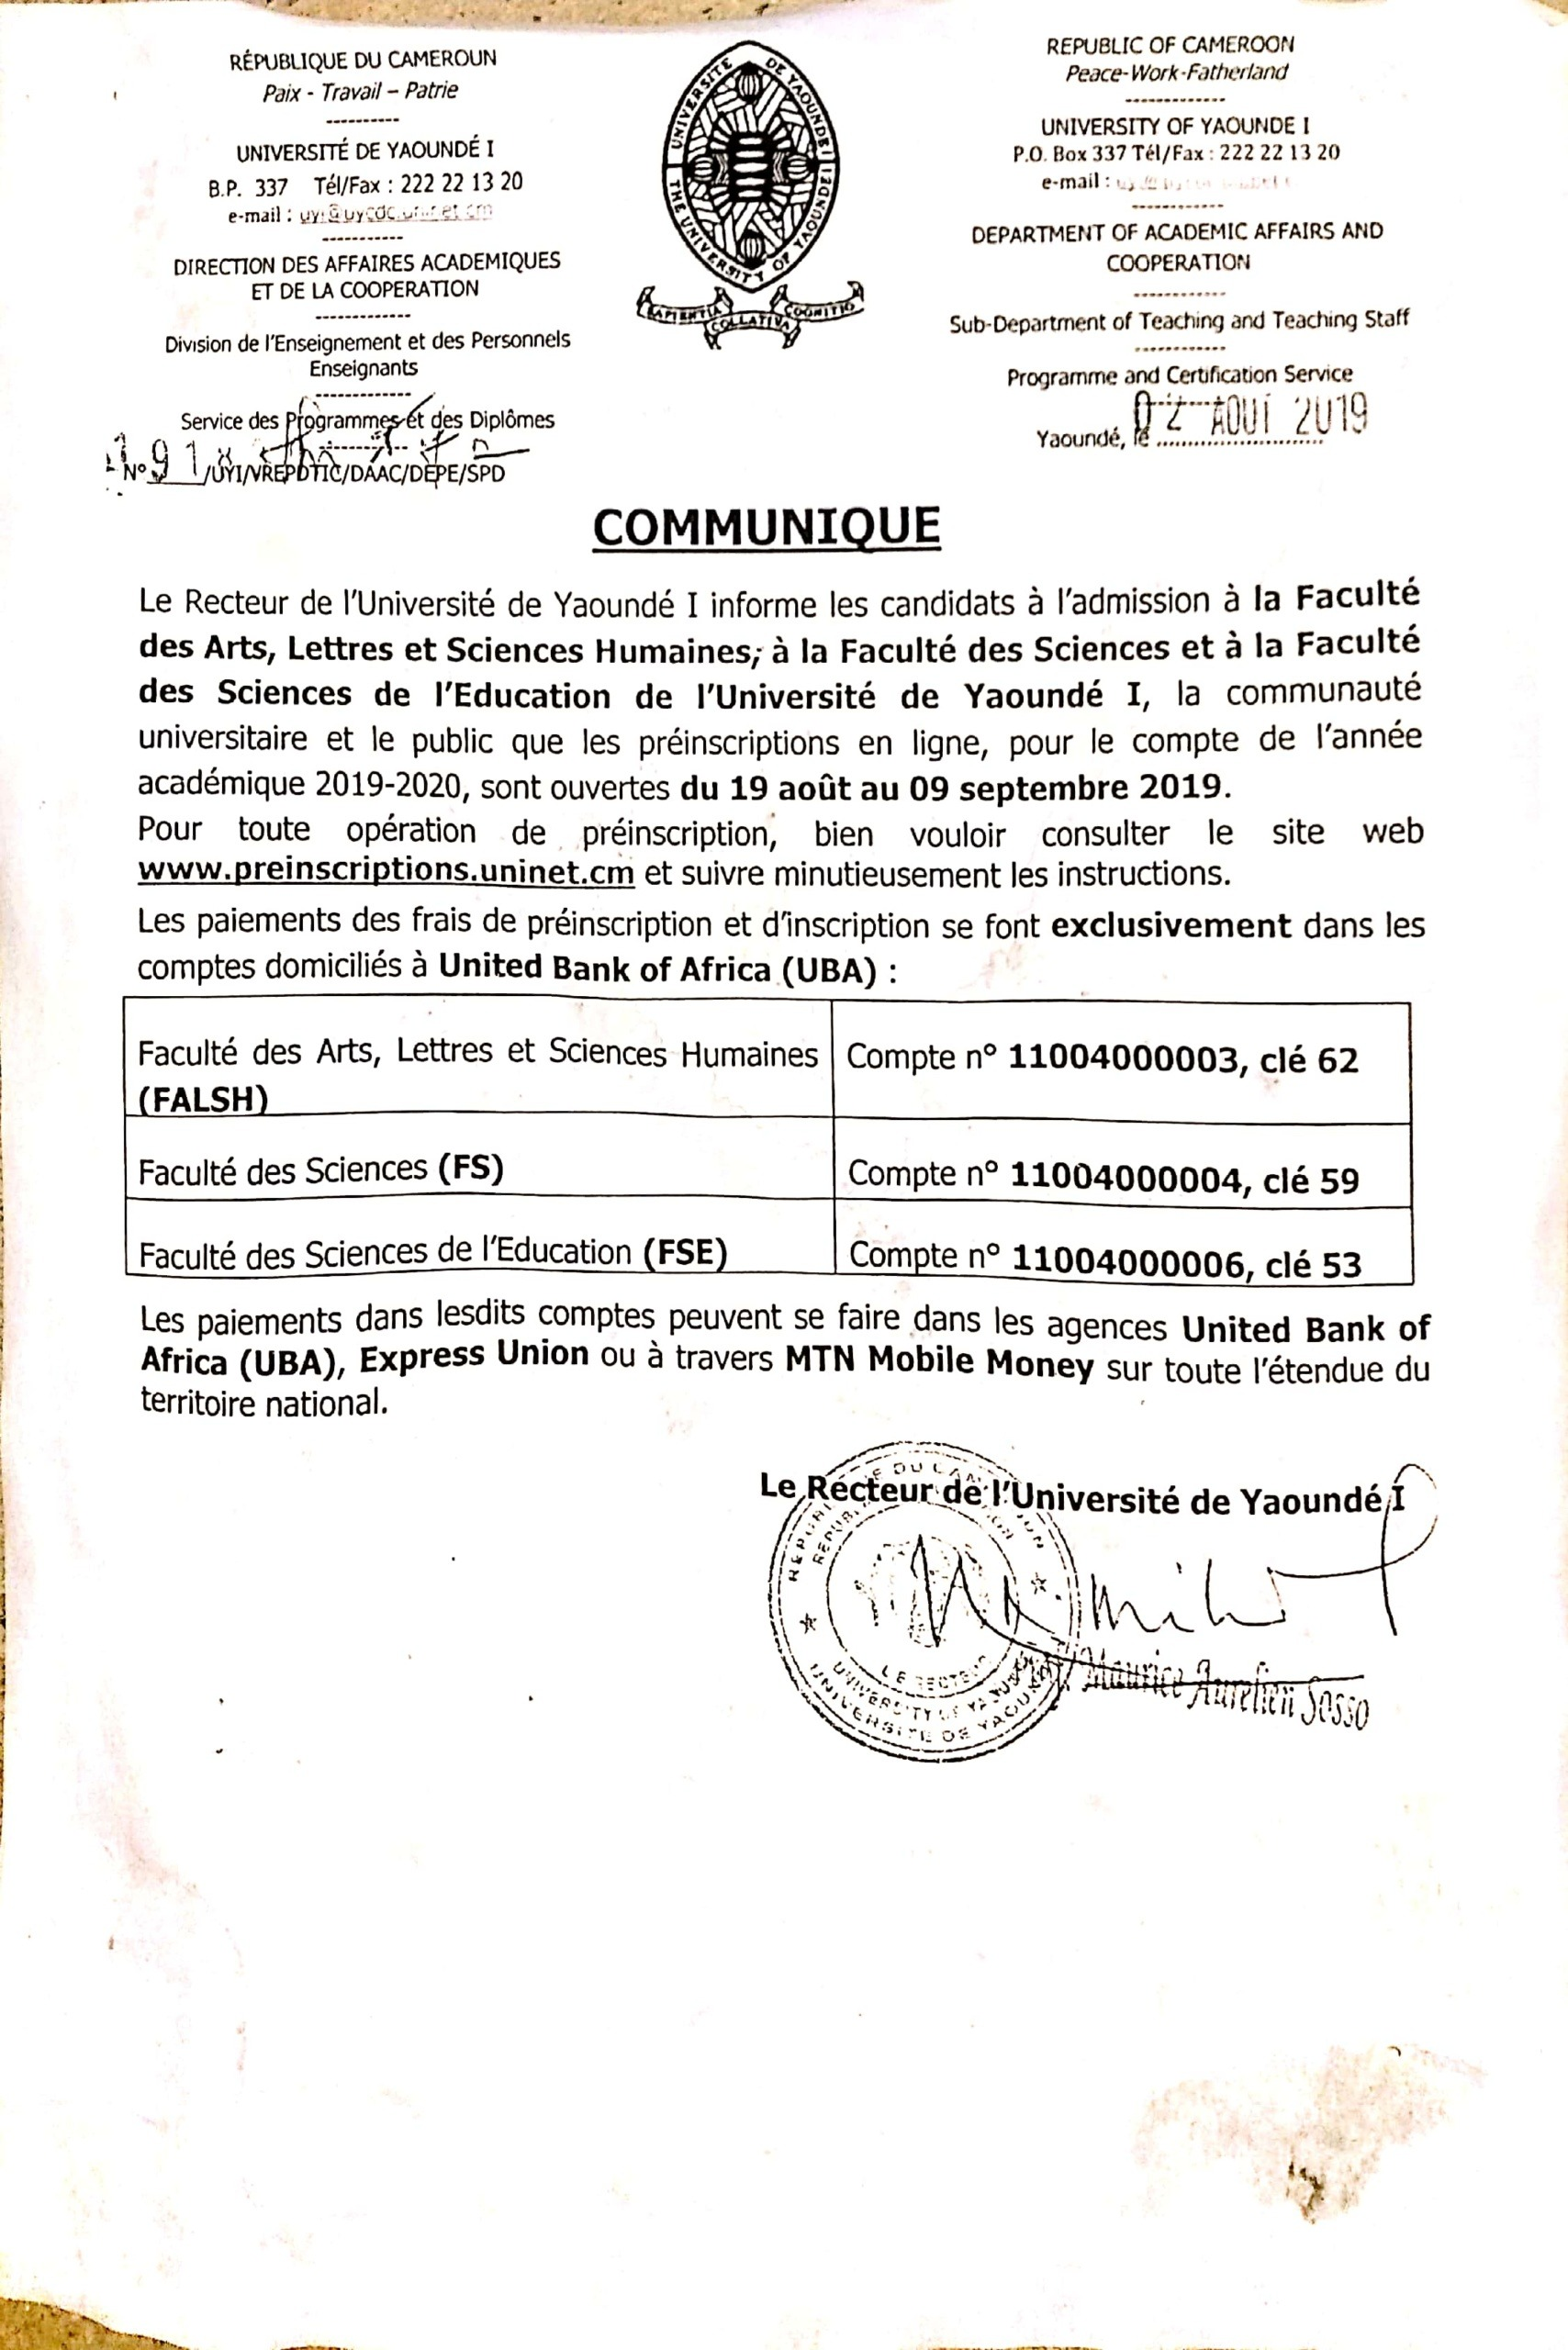 Press Release Registration at the Faculty of Sciences of the University of Yaoundé 1 ,  2019-2020